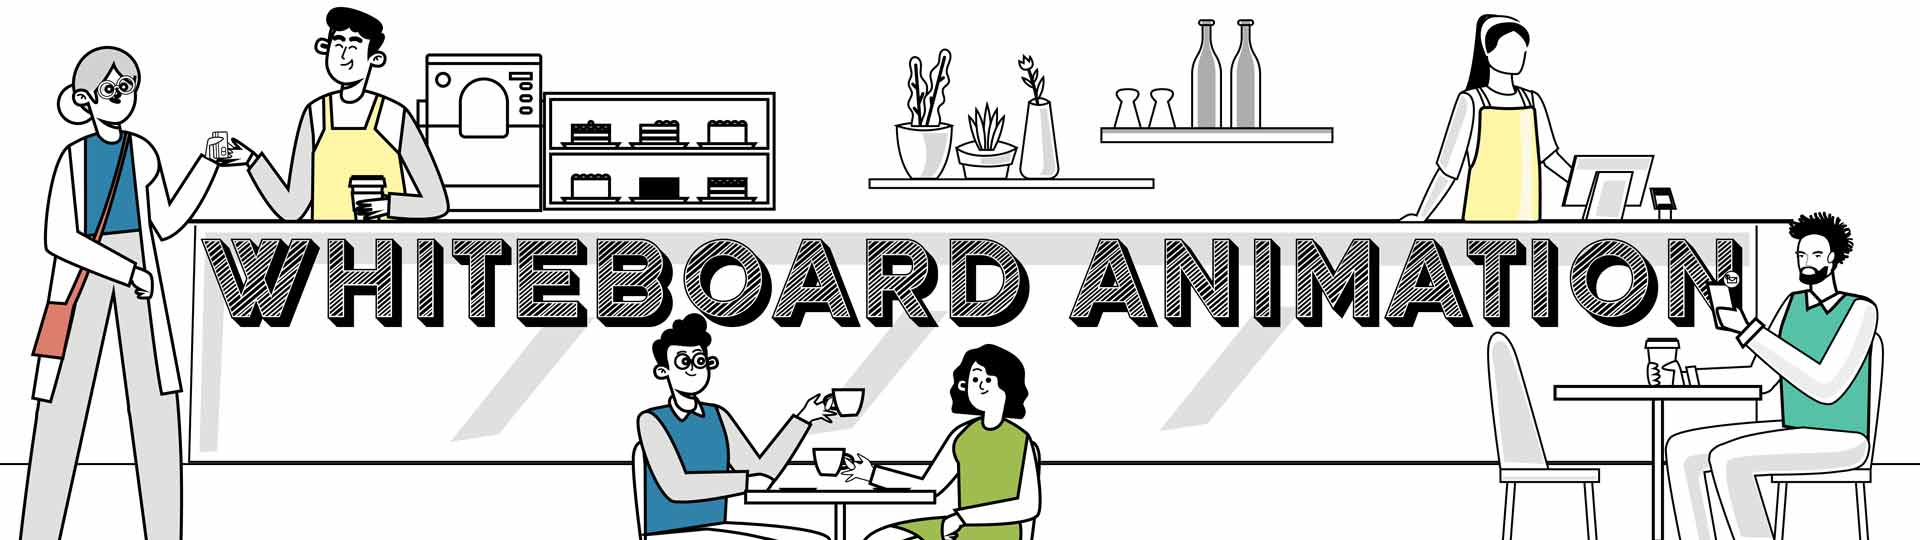 whiteboard-animation